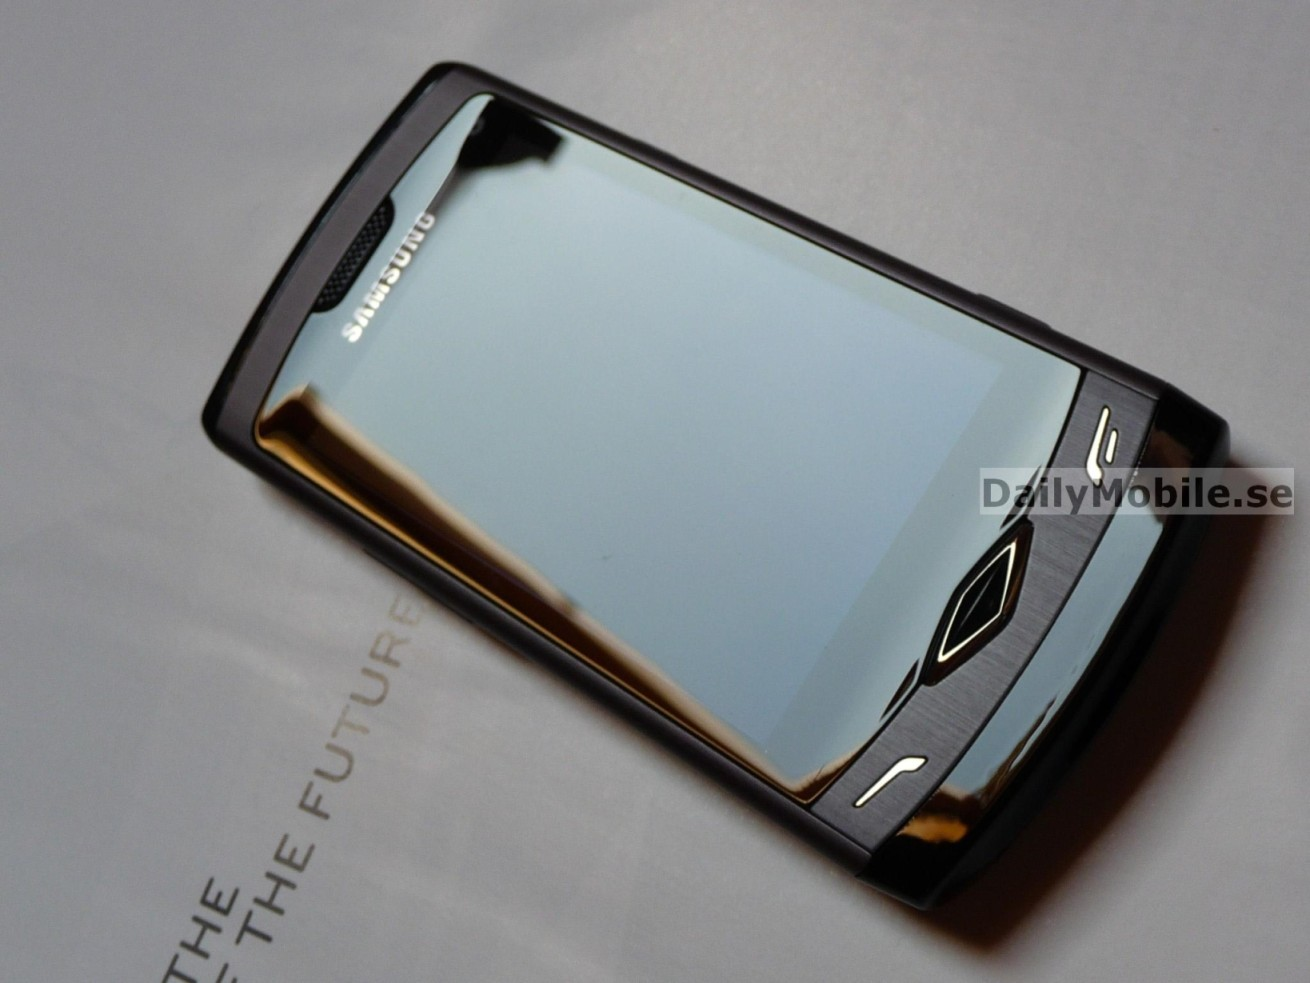 Samsung s8500 Wave 01   Daily Mobile